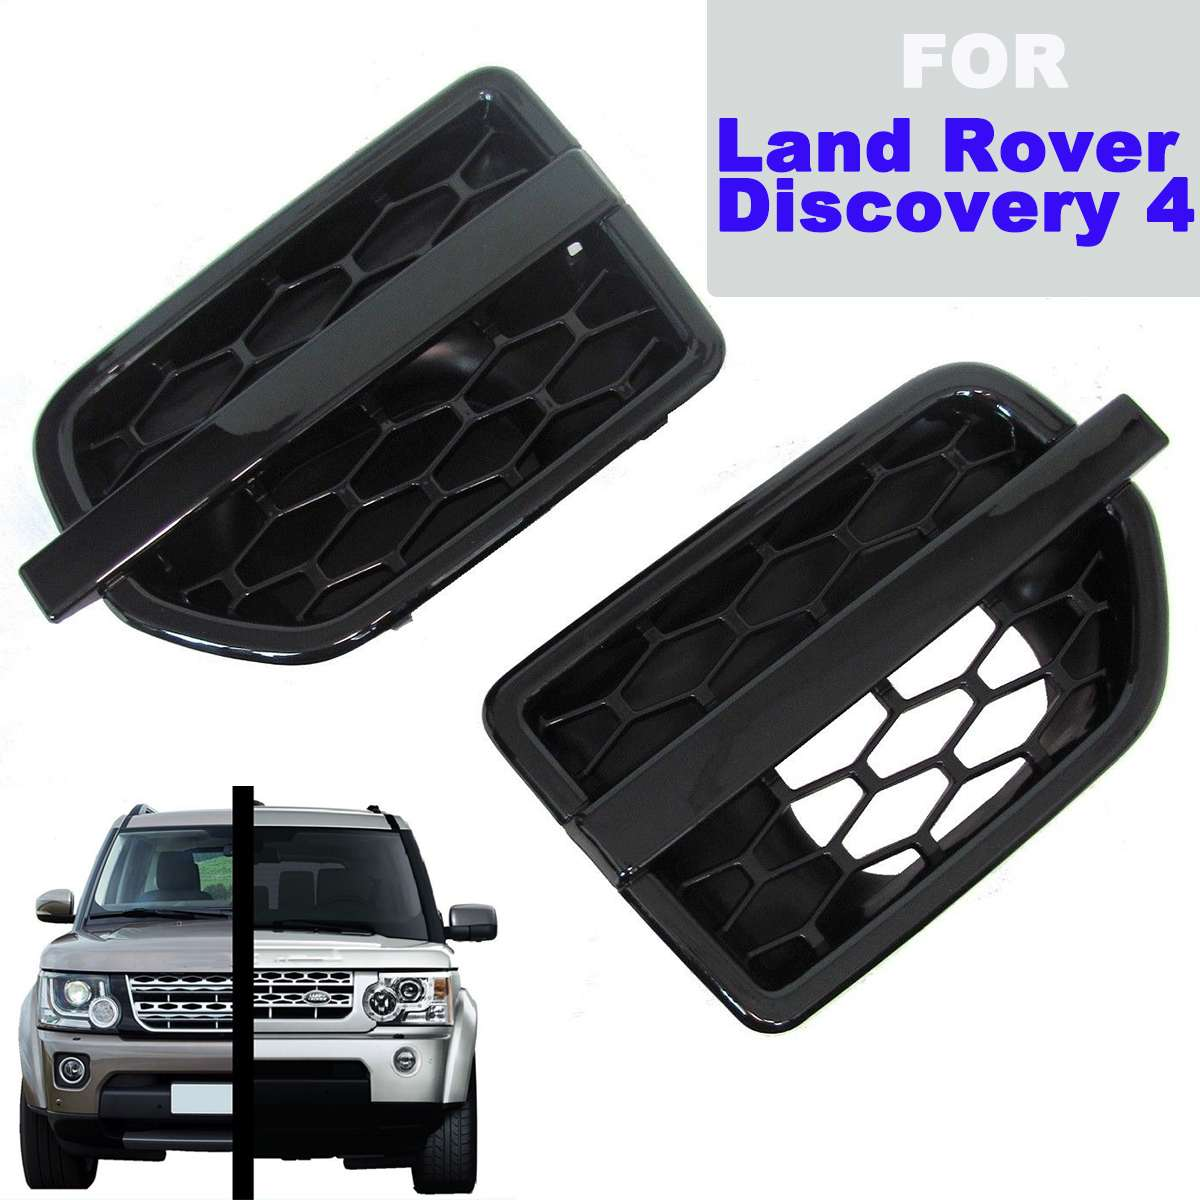 1 Set Air Side Vents Front Wing Intake Grille for Land Rover for Discovery 4 LR4 Car Styling ABS Gloss Black Front Grilles1 Set Air Side Vents Front Wing Intake Grille for Land Rover for Discovery 4 LR4 Car Styling ABS Gloss Black Front Grilles